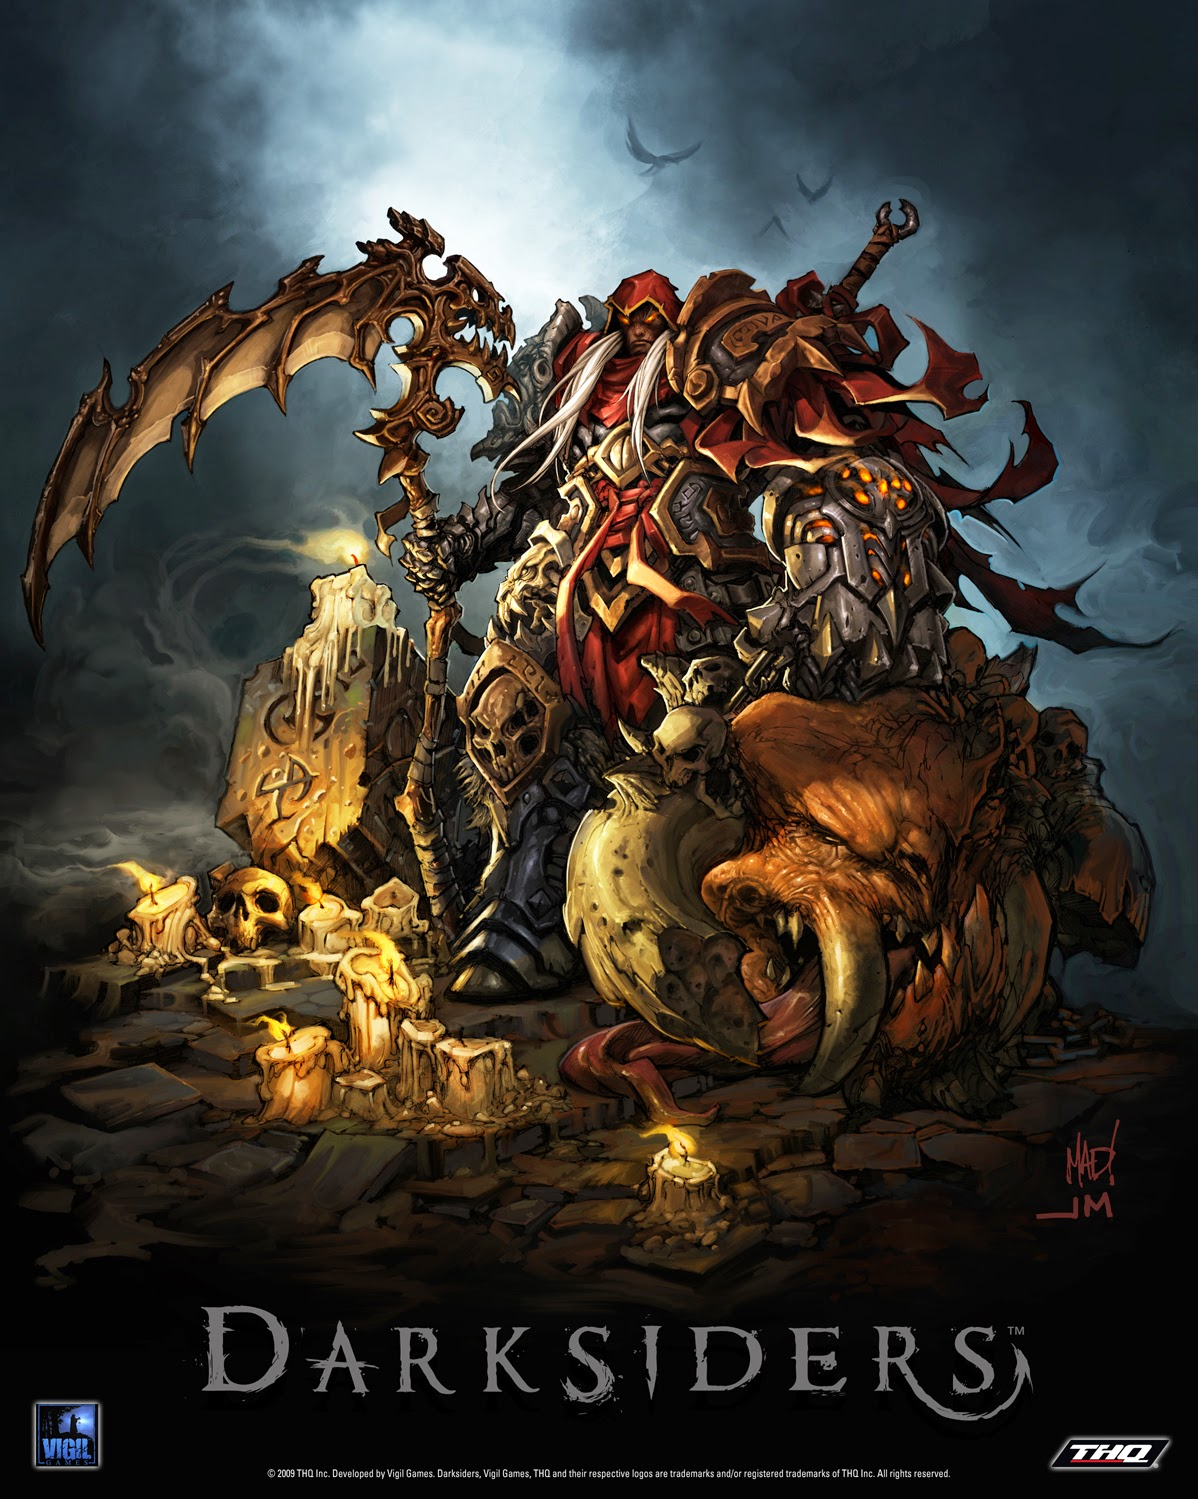 DARKSIDERS-BLACK BOX